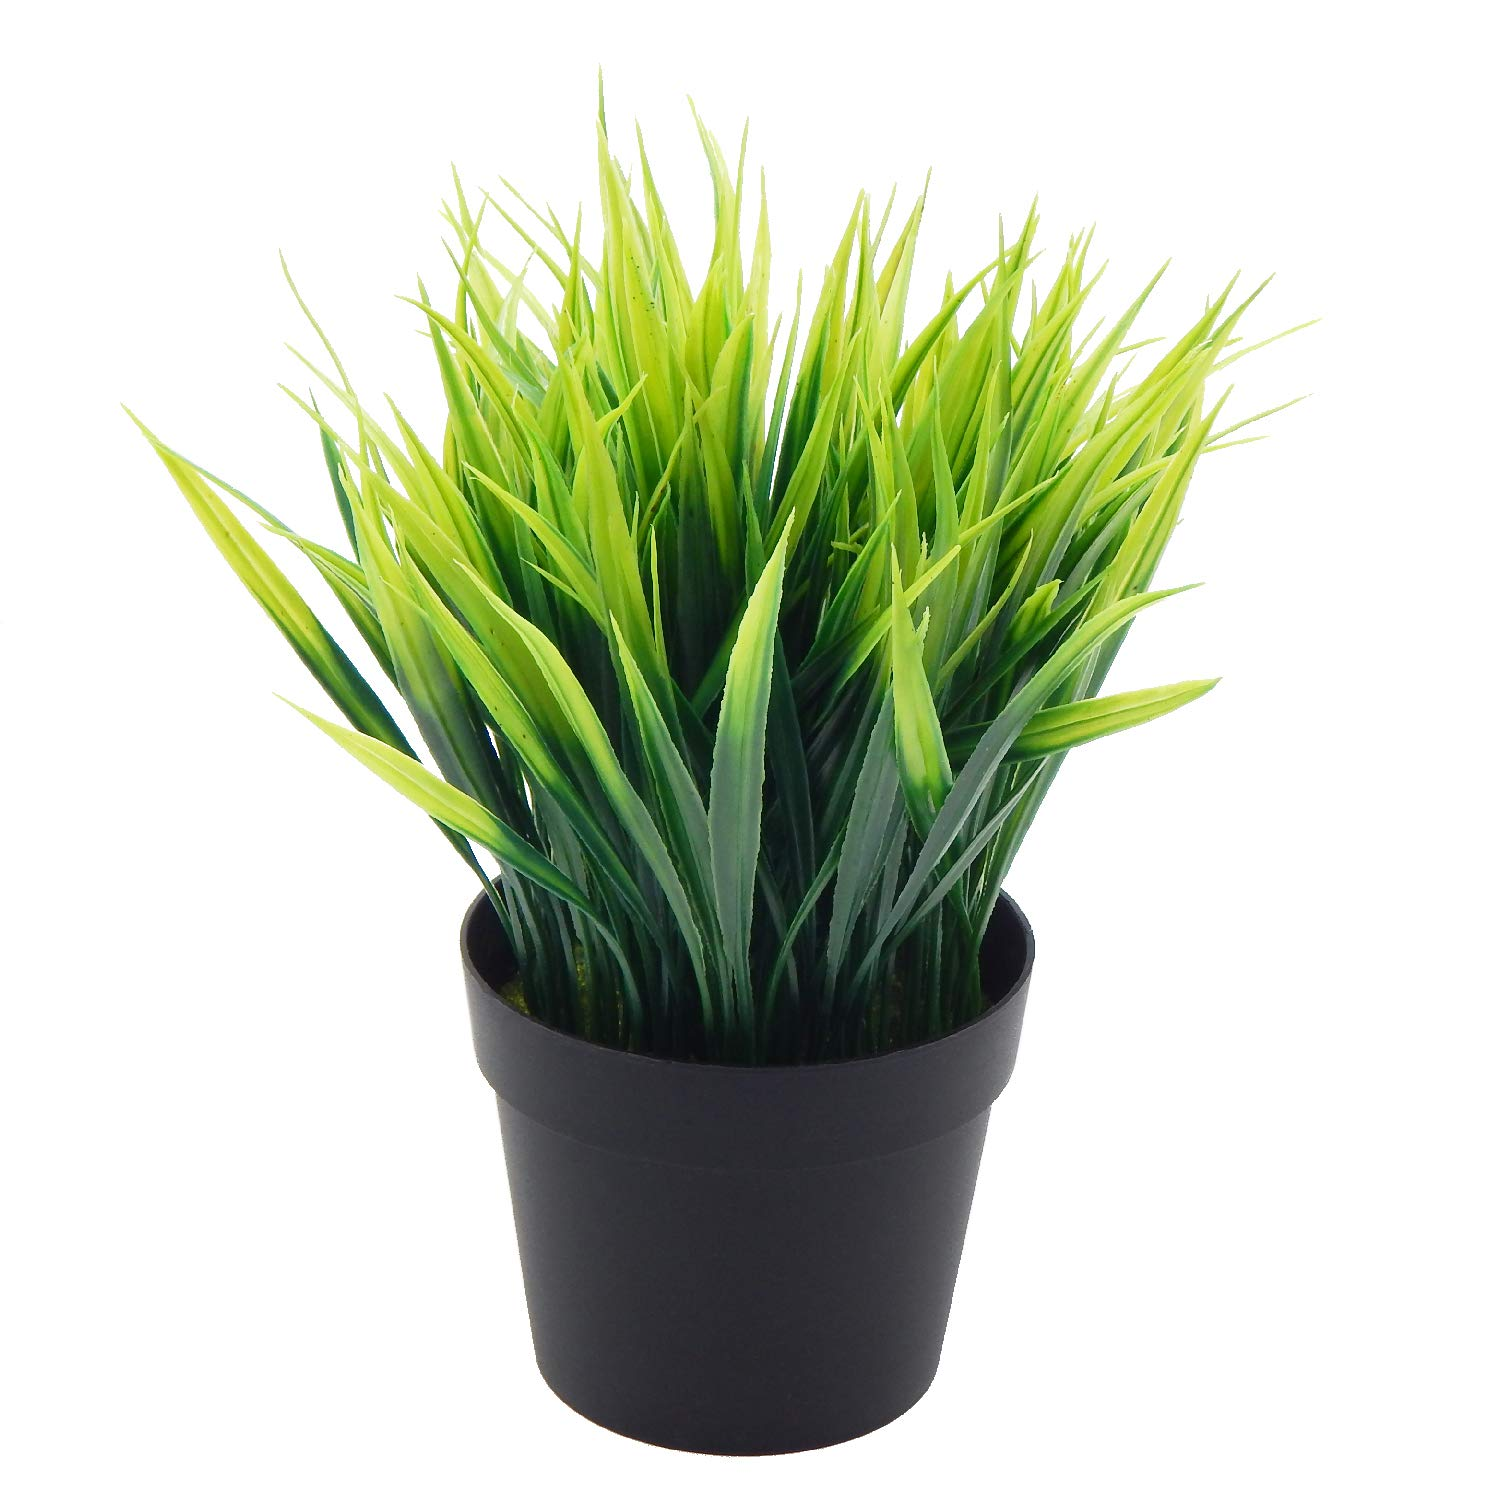 OFFIDIX Artificial Potted Plant,Fake Plant for Office Desktop, Faux Plant Wheat Grass with Black Plastic Pots for Home Bathroom Decoration Indoor